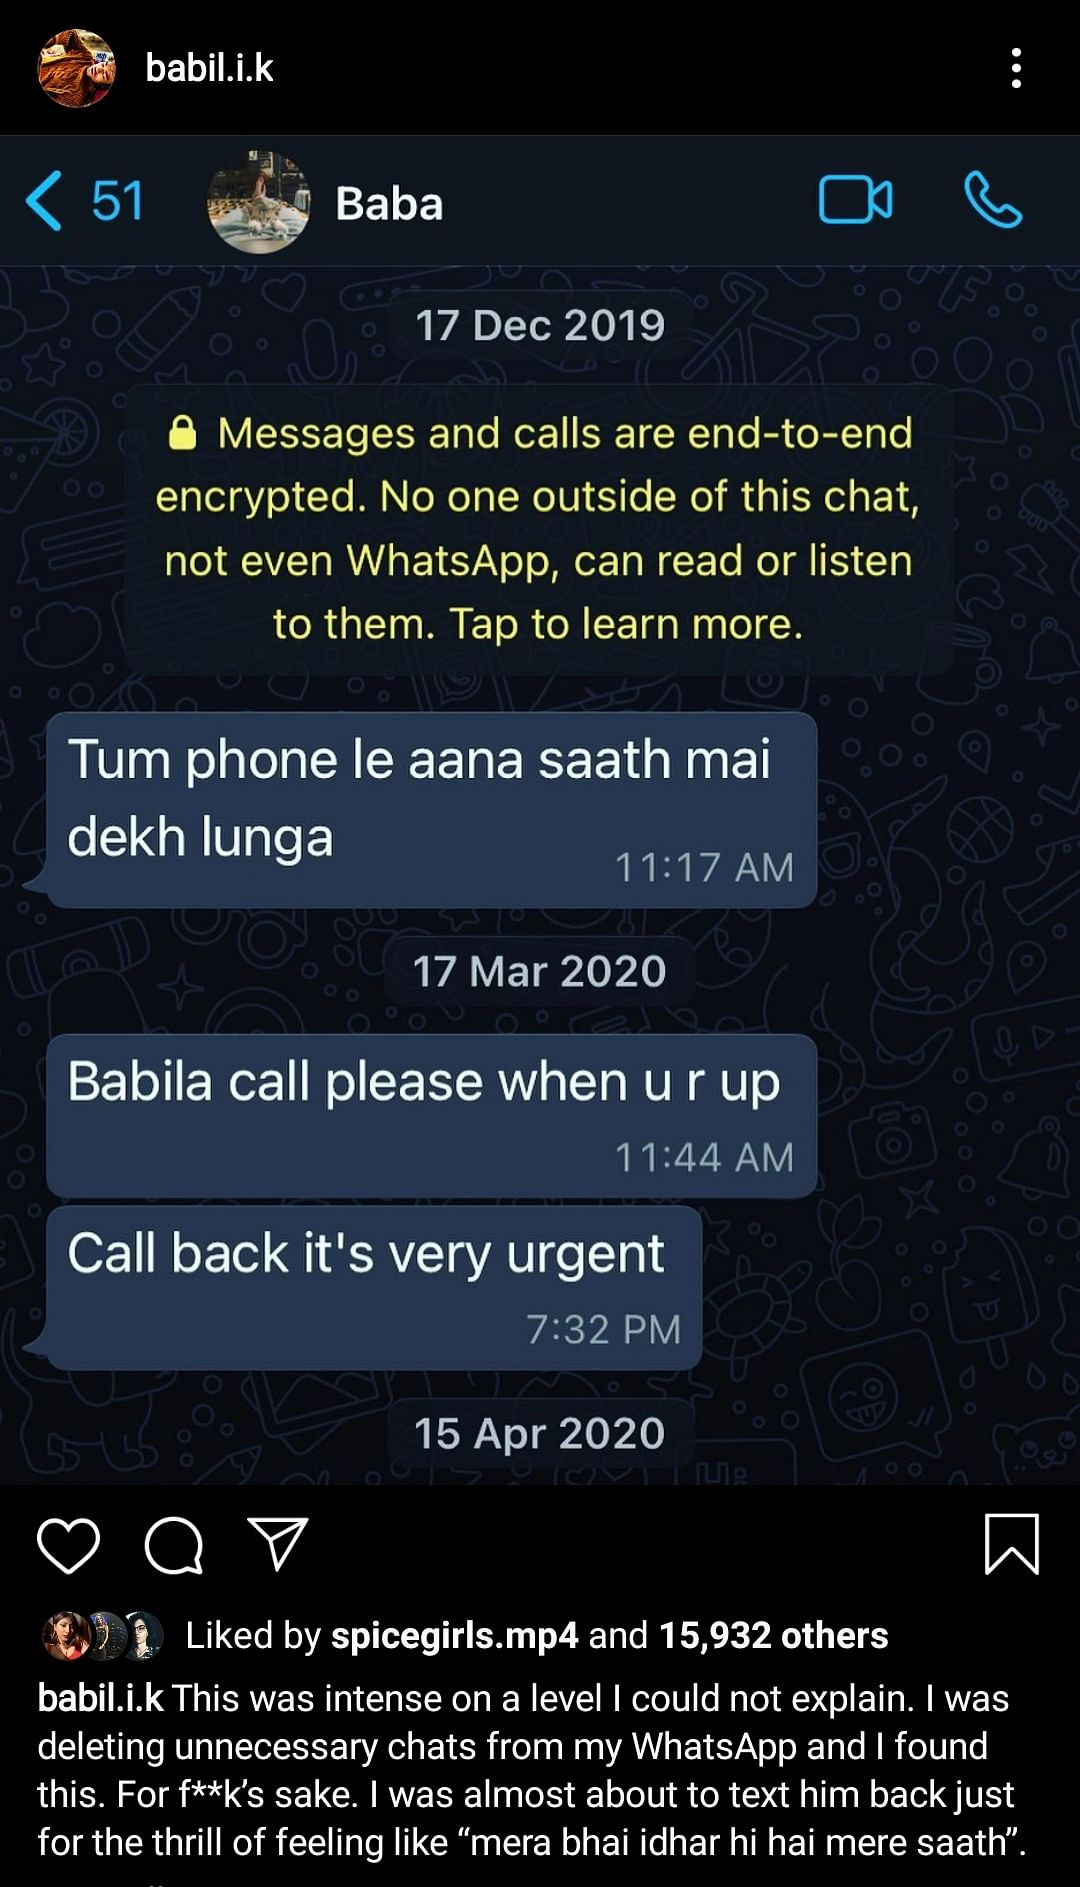 Babil shared a screenshot of old messages from his father Late Irrfan Khan